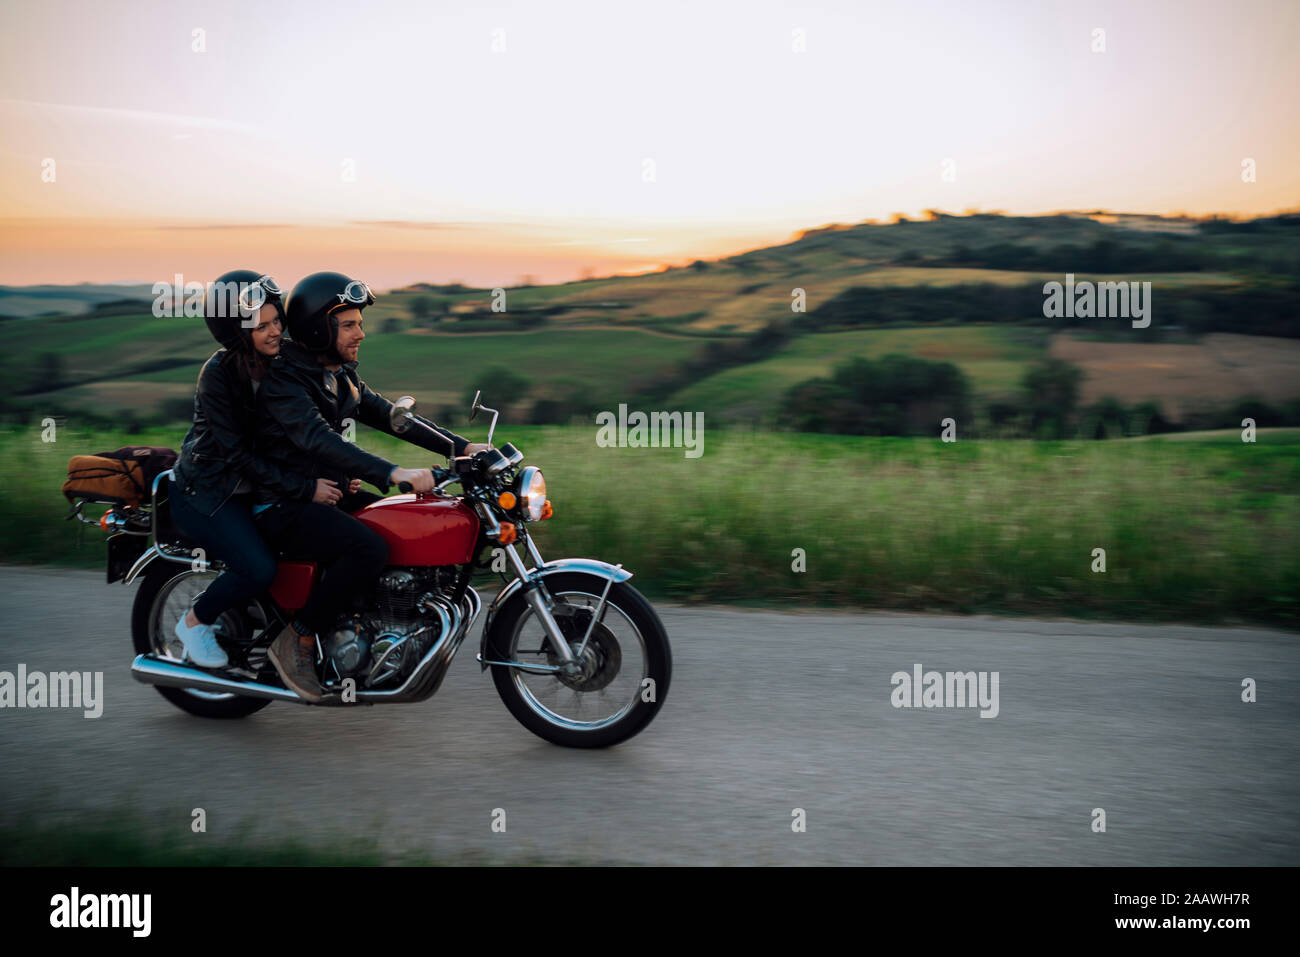 Young couple riding vintage motorbike on country road at sunset, Tuscany, Italy Stock Photo